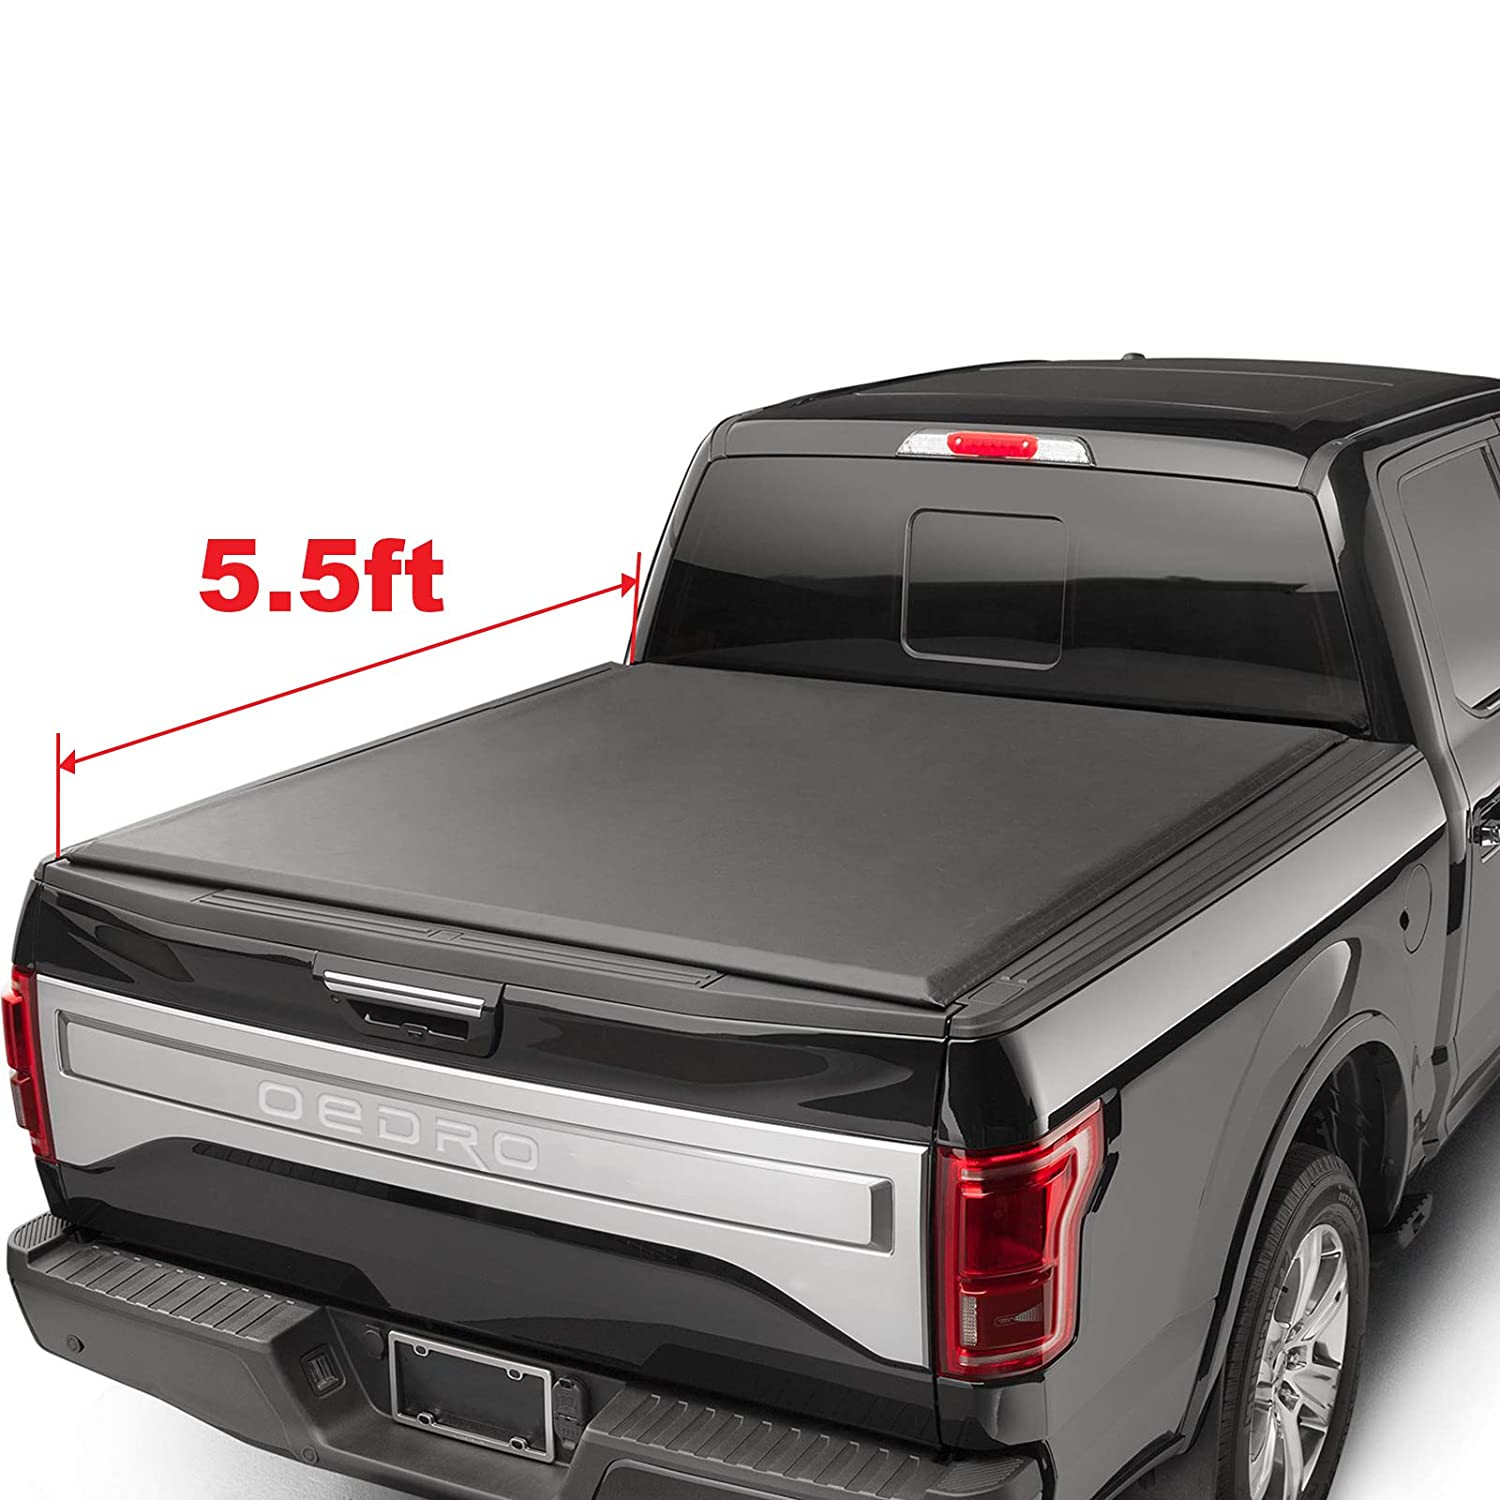 oEdRo Roll Up Truck Bed Tonneau Cover Compatible with 2009-2014 Ford F-150 | Styleside 5.5' Bed